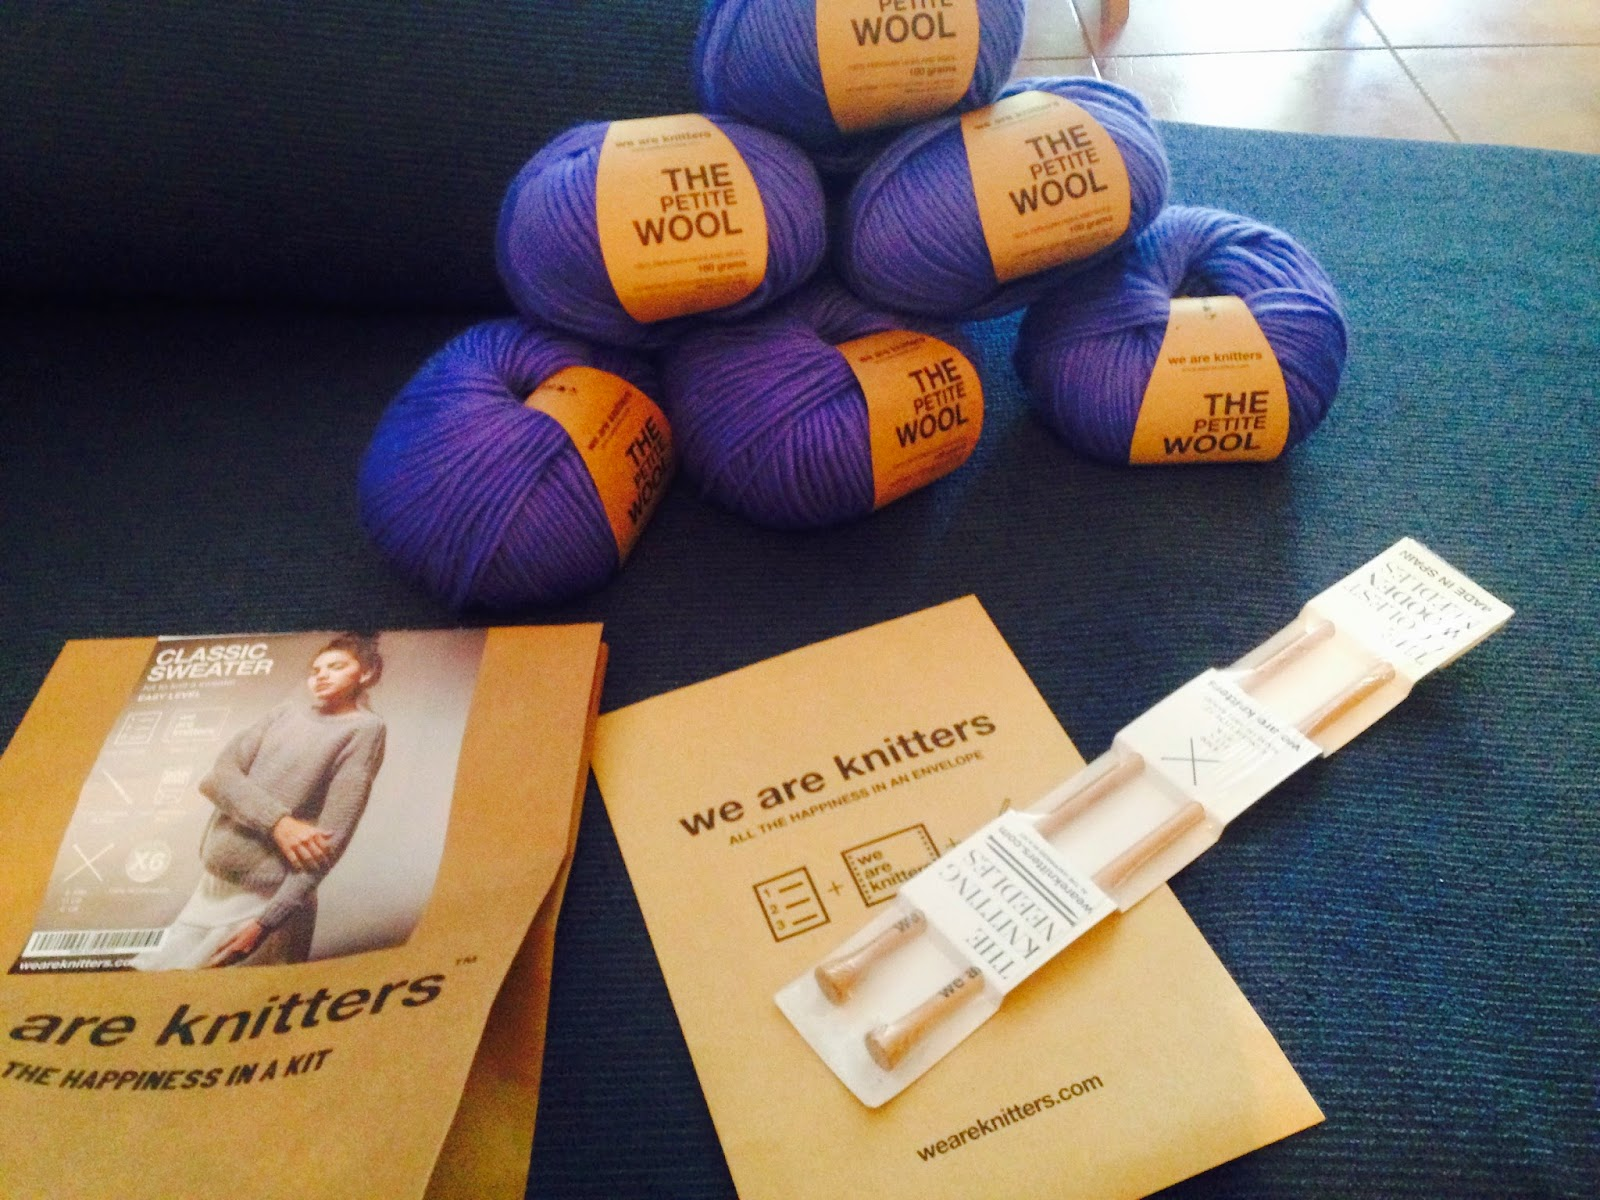 kit we are knitters